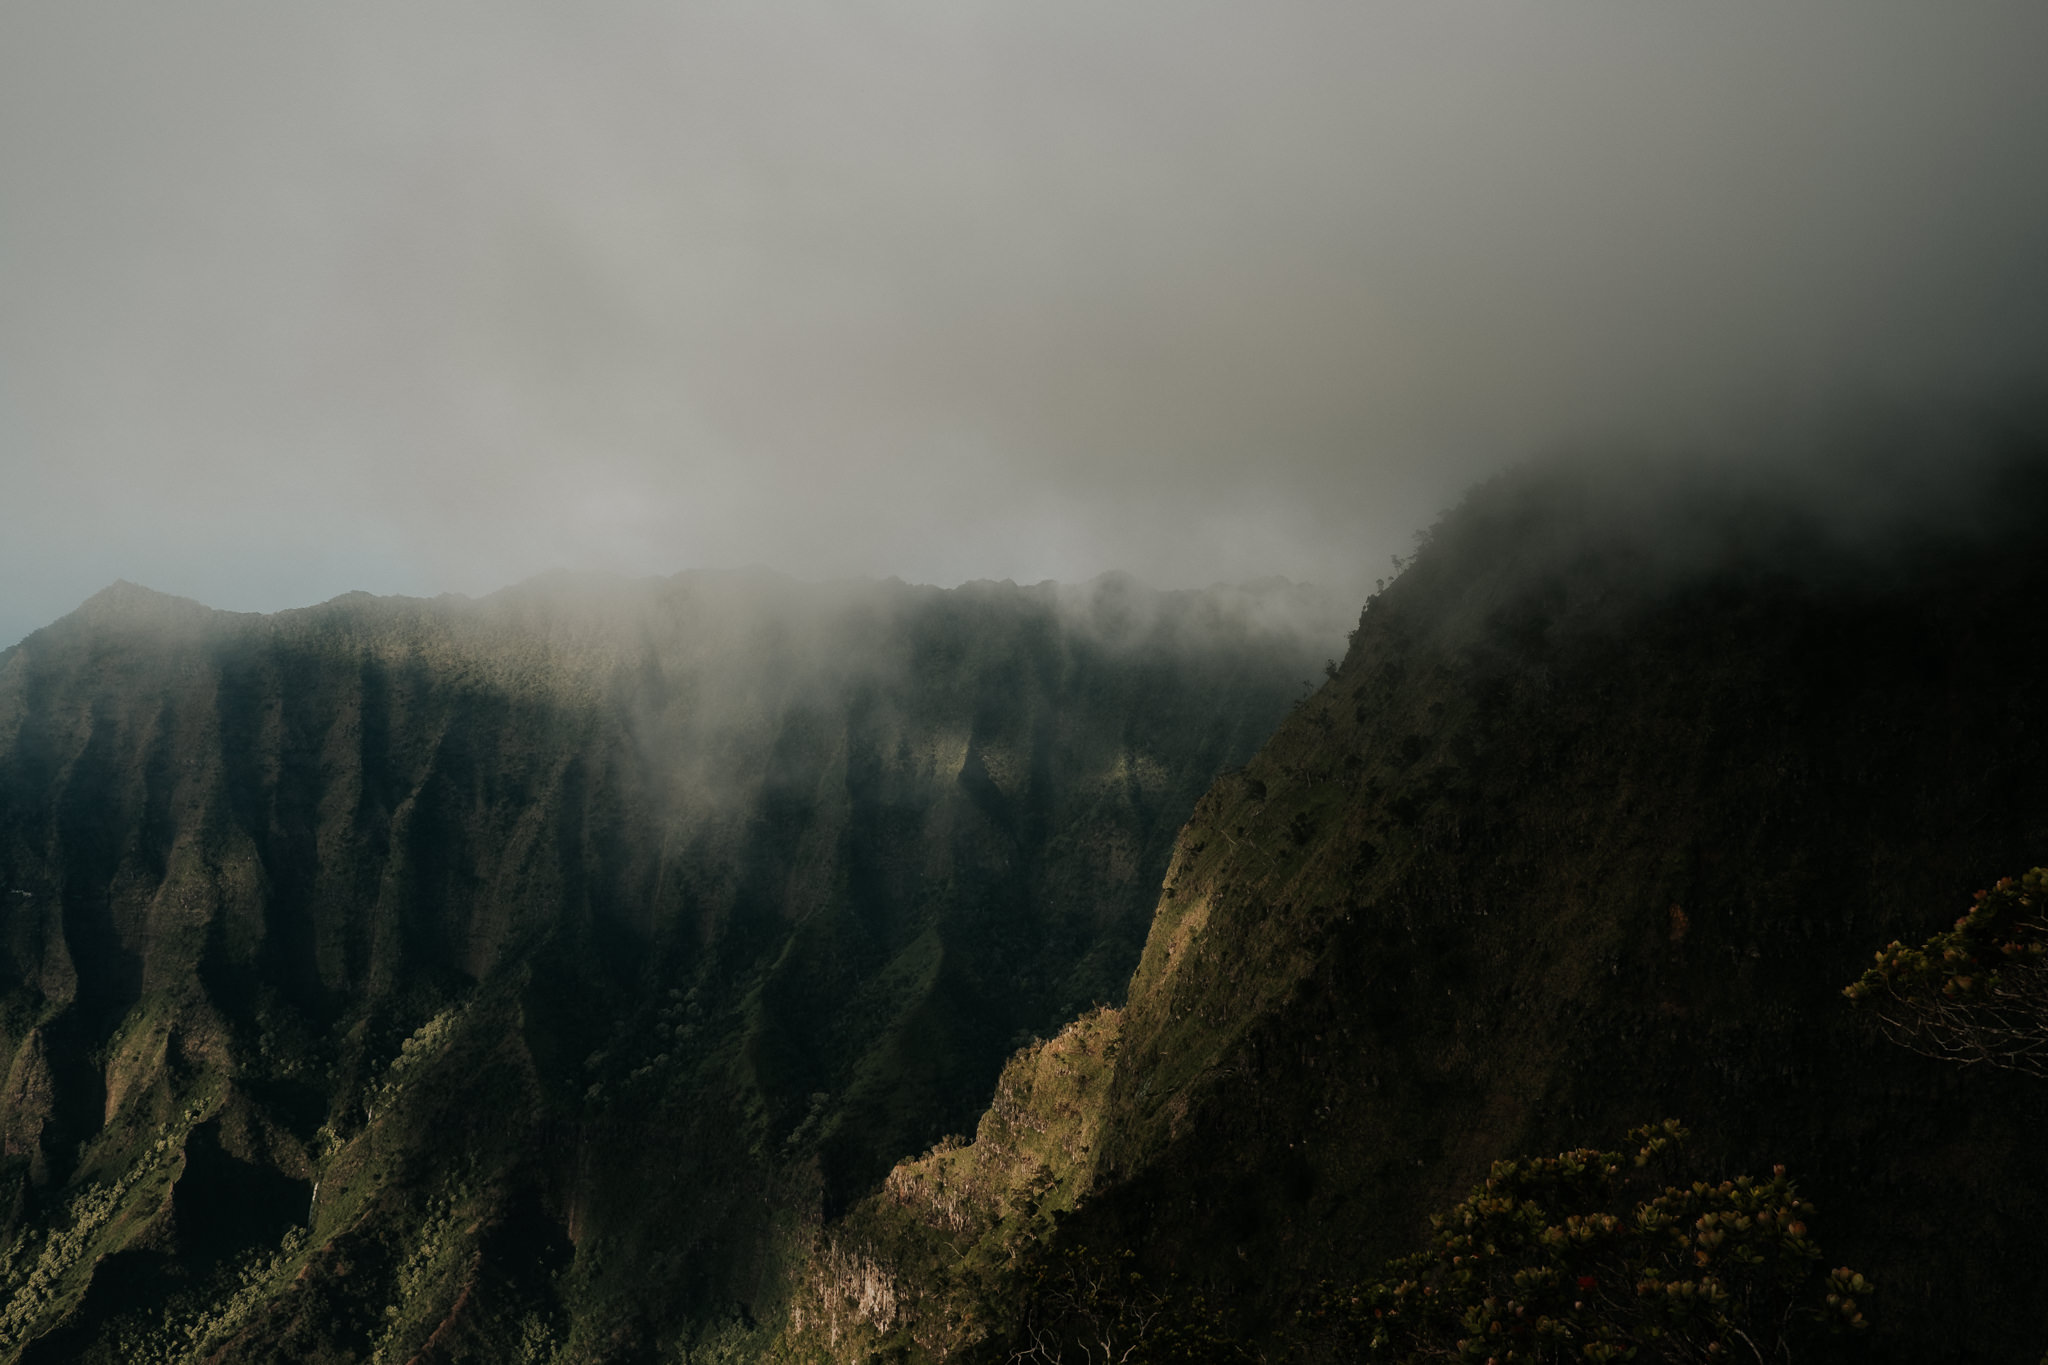 na pali coast in fog